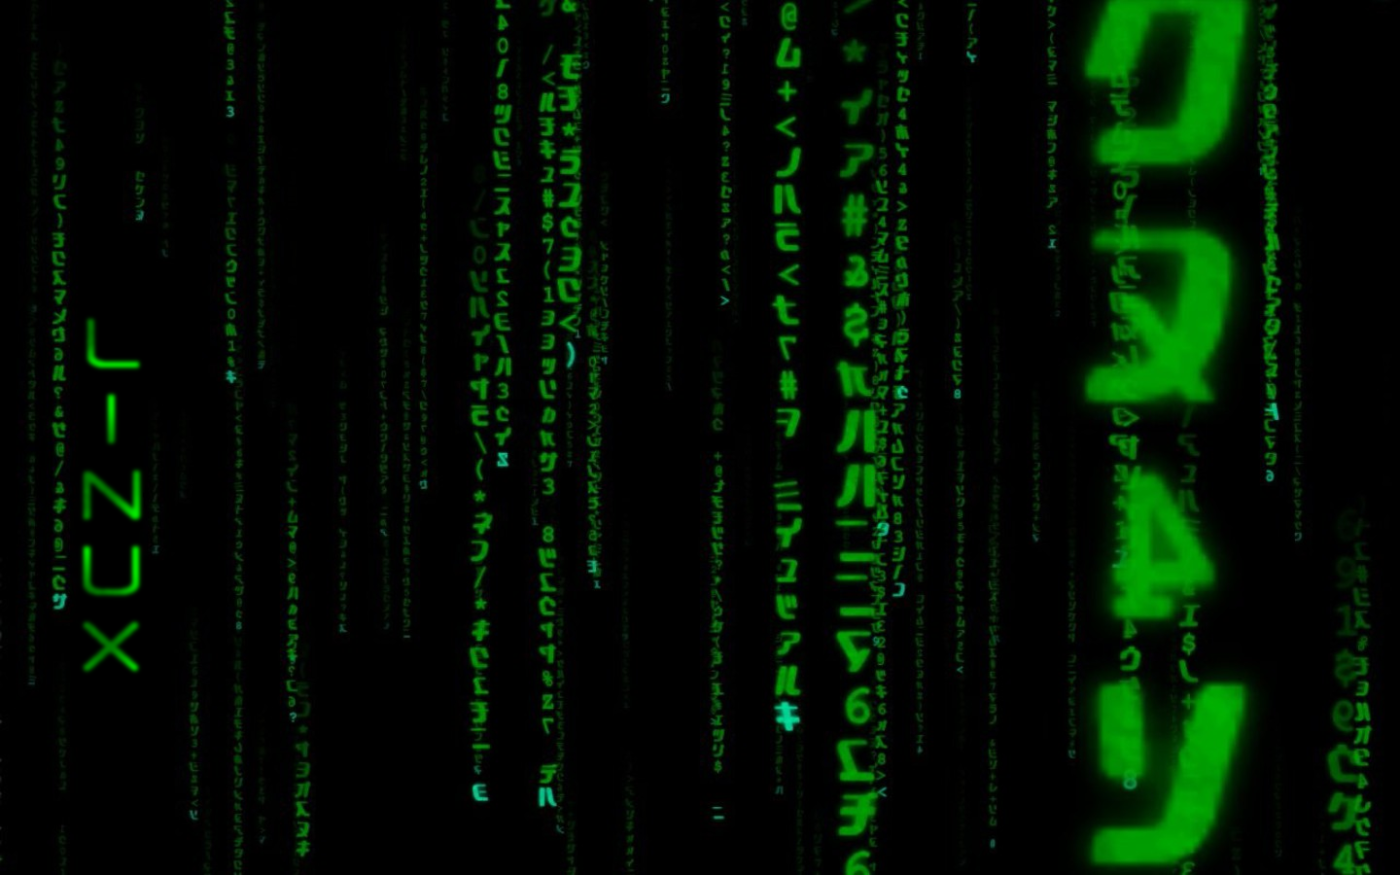 Matrix_Code_Linux_1_by_malbzamora